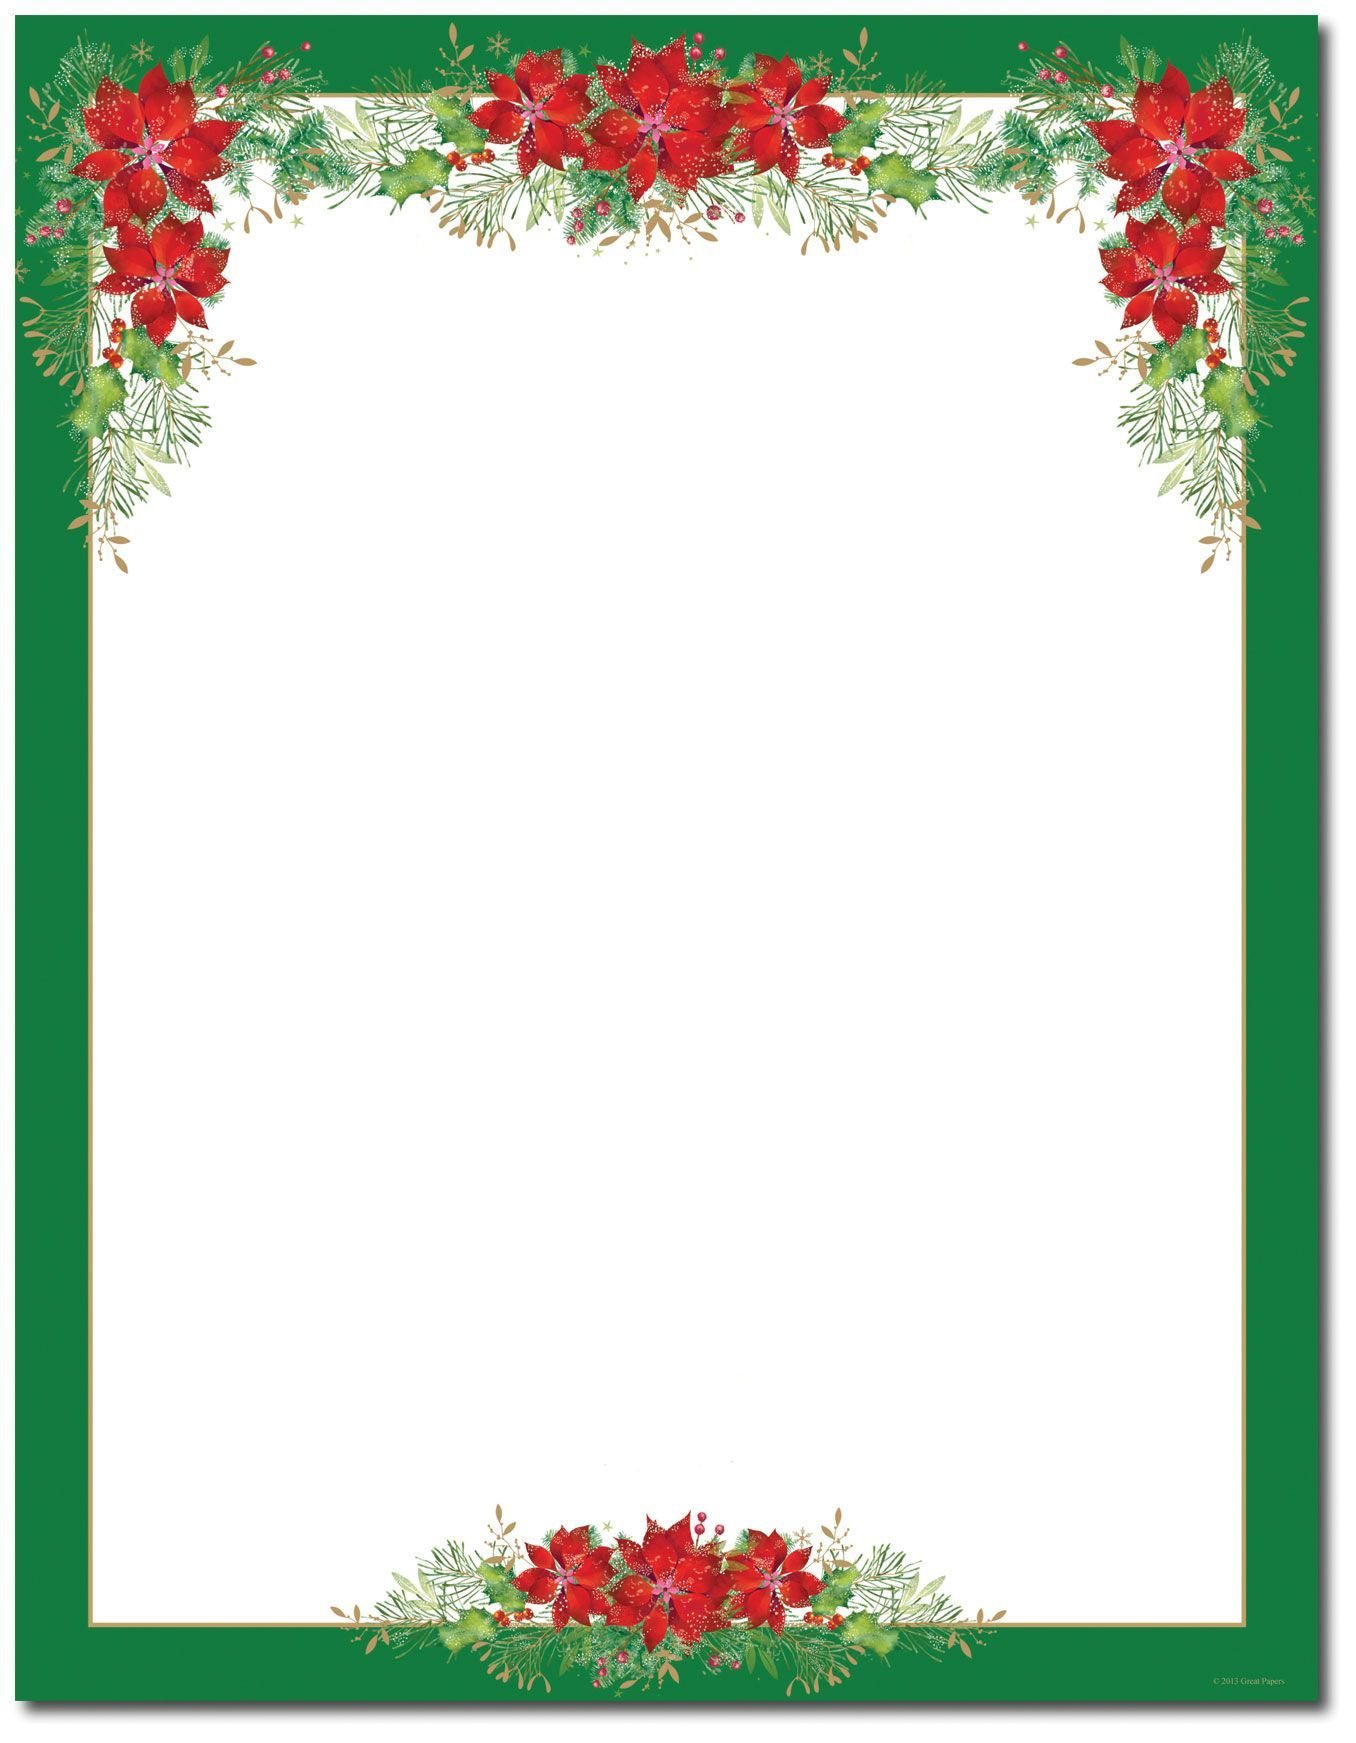 007 Wondrou Free Holiday Stationery Template For Word Image Full